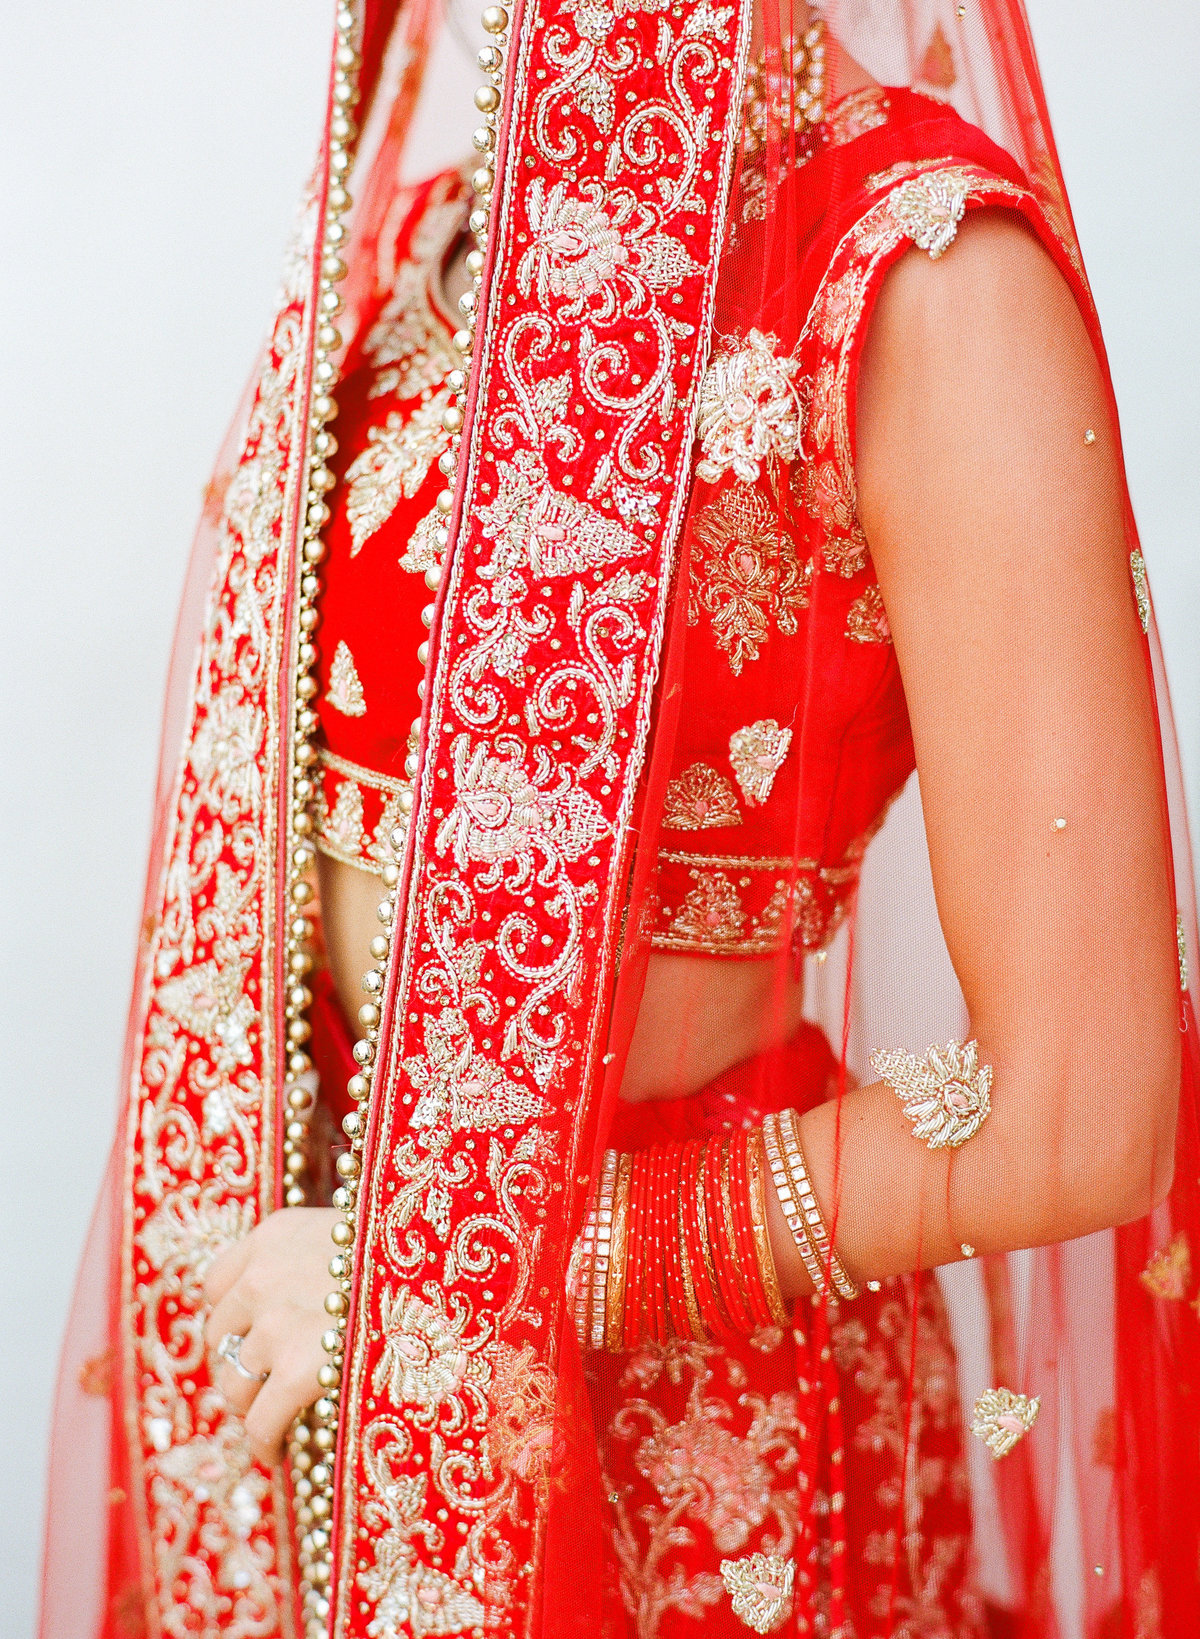 sasha-aneesh-wedding-bride-groom-indian-34